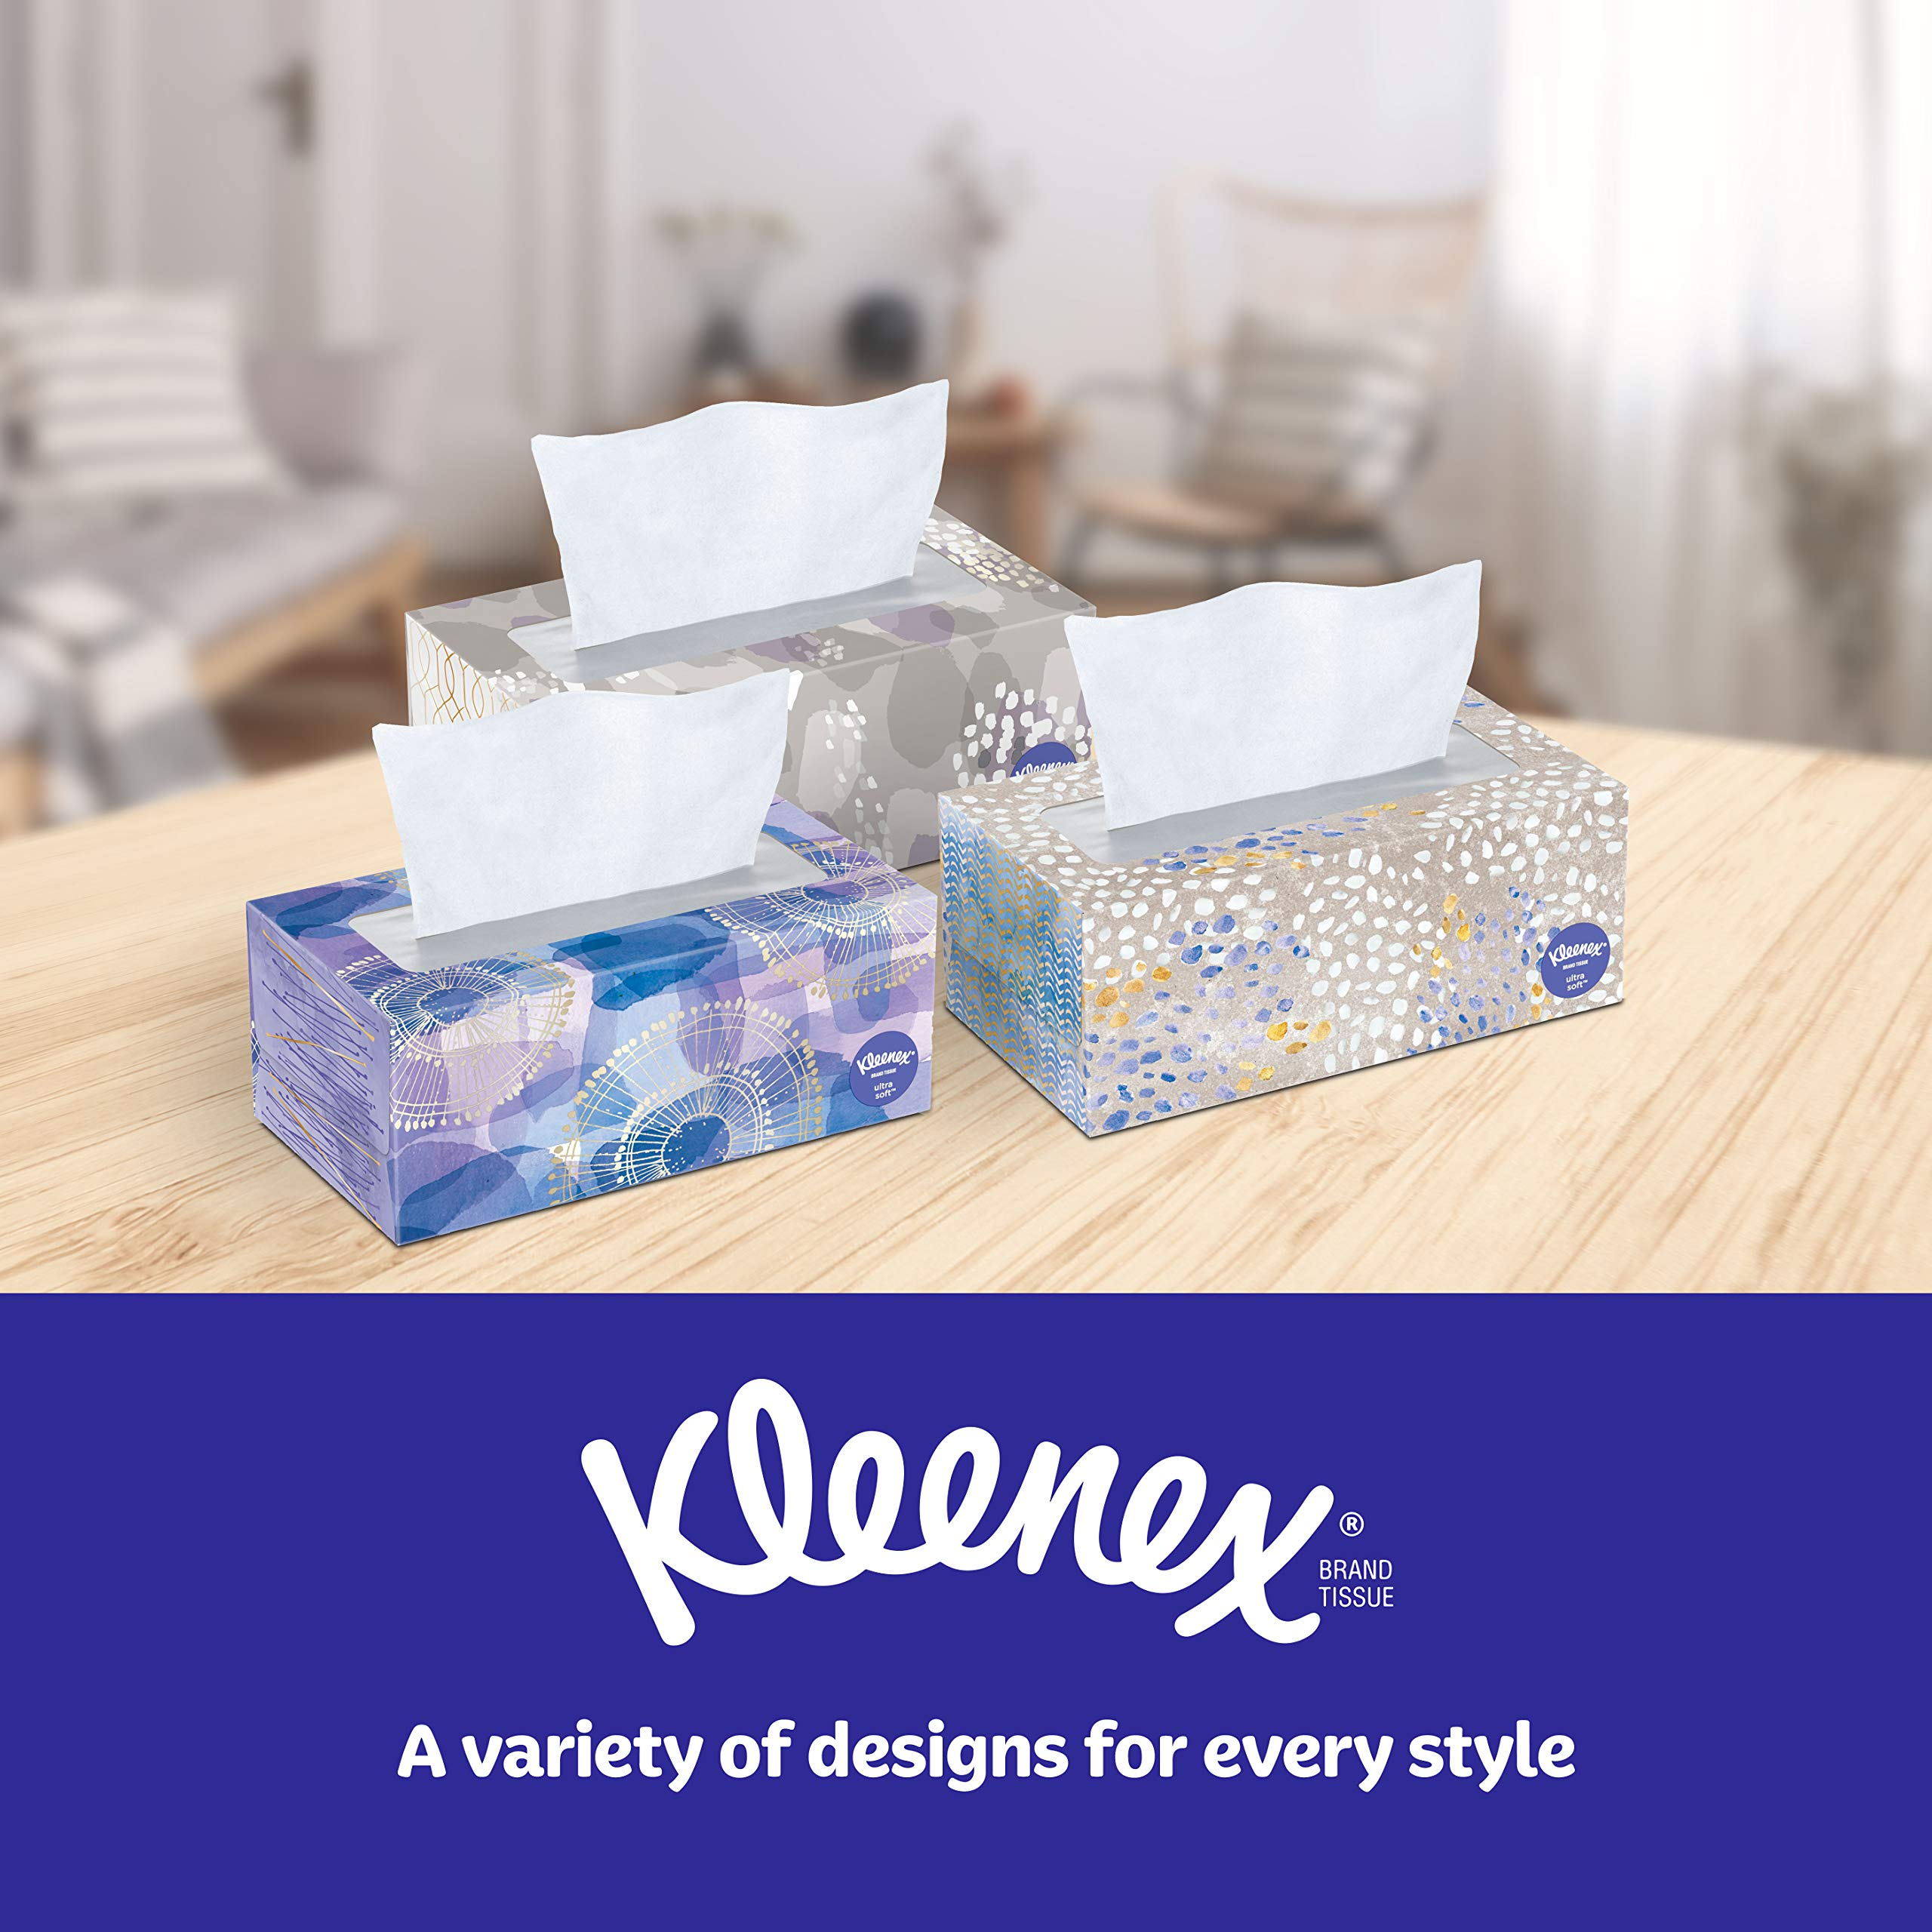 Kleenex Ultra Soft Facial Tissues, 120 Count per Box, Pack of 8 by Kleenex (Image #5)